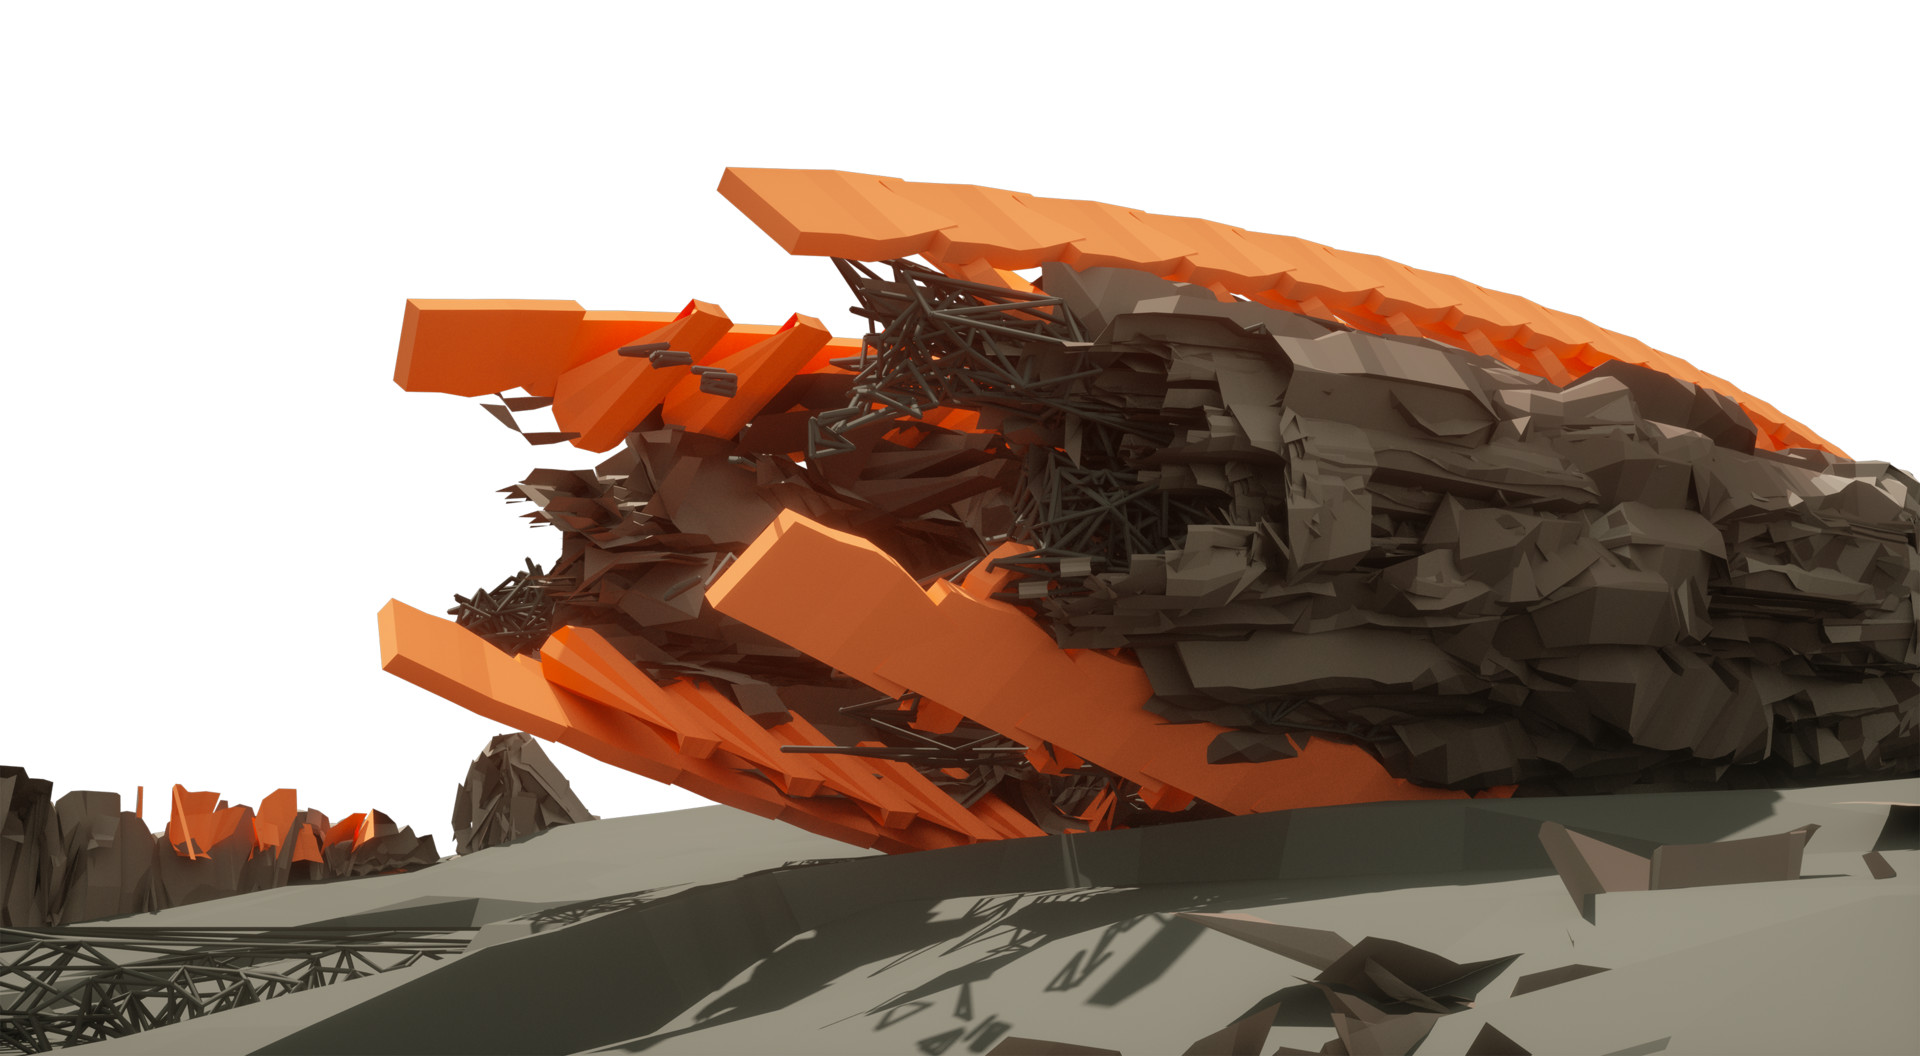 Leon tukker crashed ship4 copy